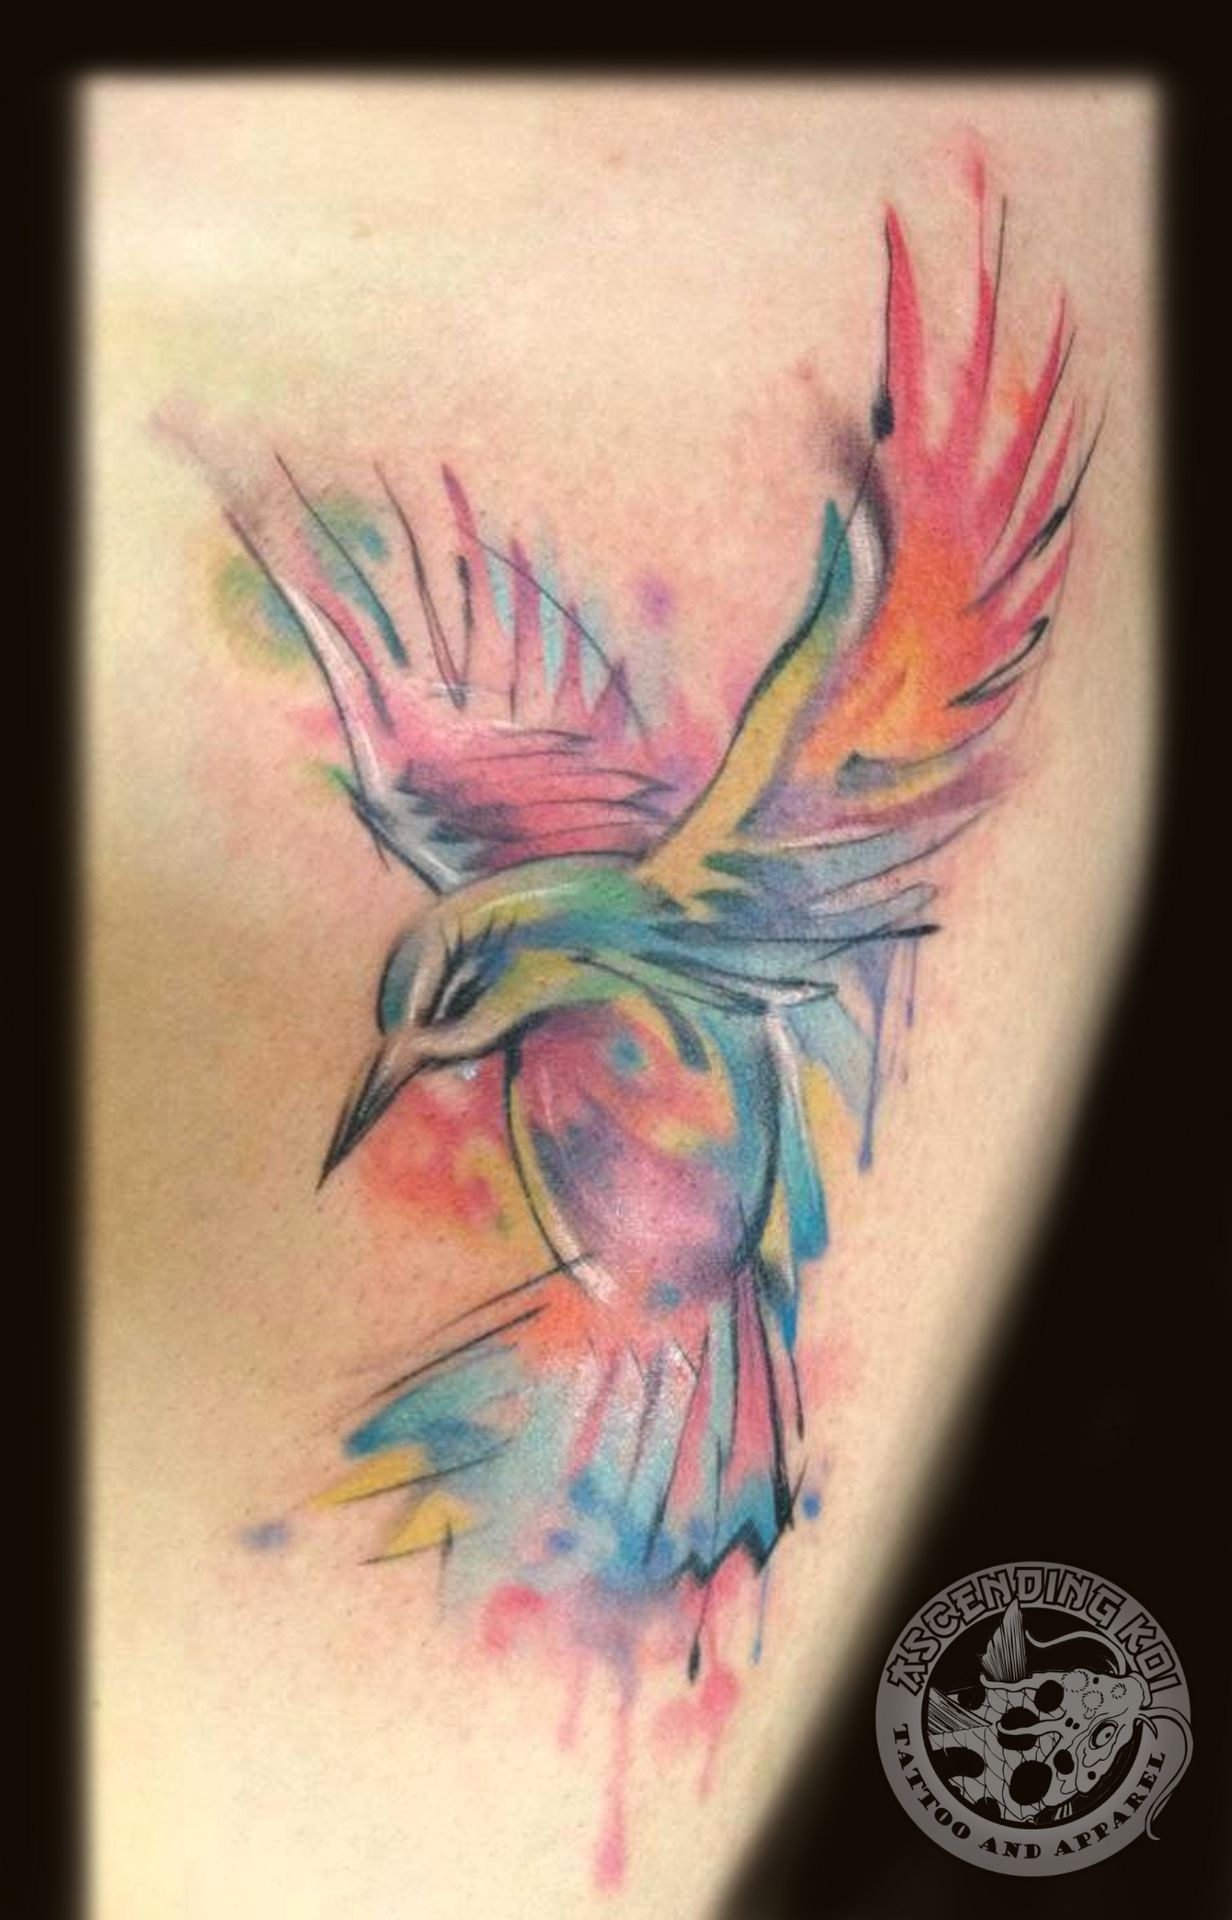 Done By Trevor Jameus At Ascending Koi Tattoo In Calgary Ab Canada Hummingbird Tattoo Tattoos Inspirational Tattoos